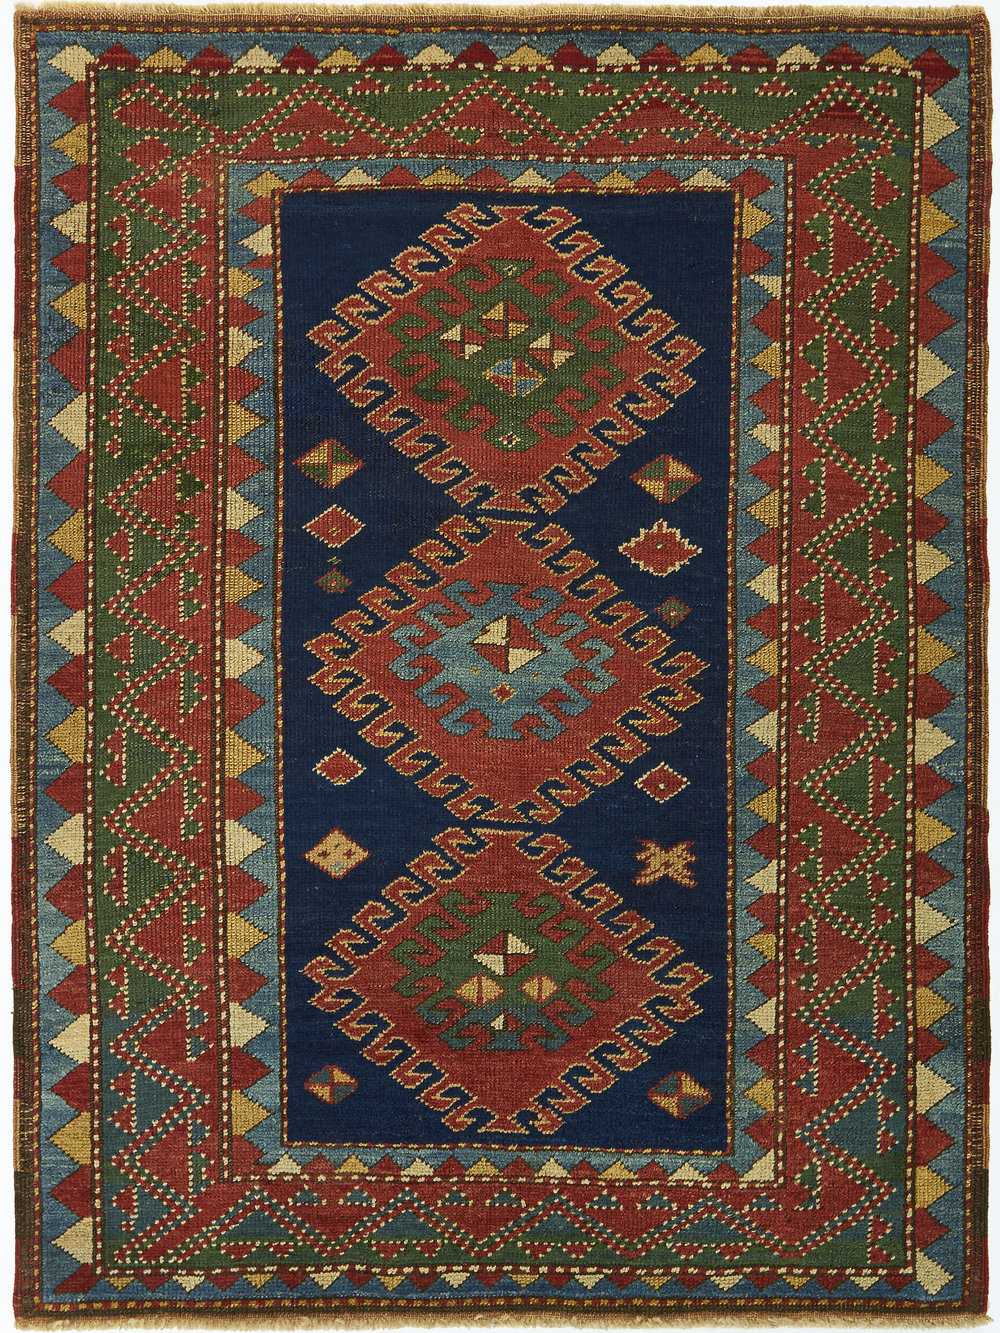 Bordjalou Kazak Rug 13561 M Topalian Inc Sales And Appraisals Of